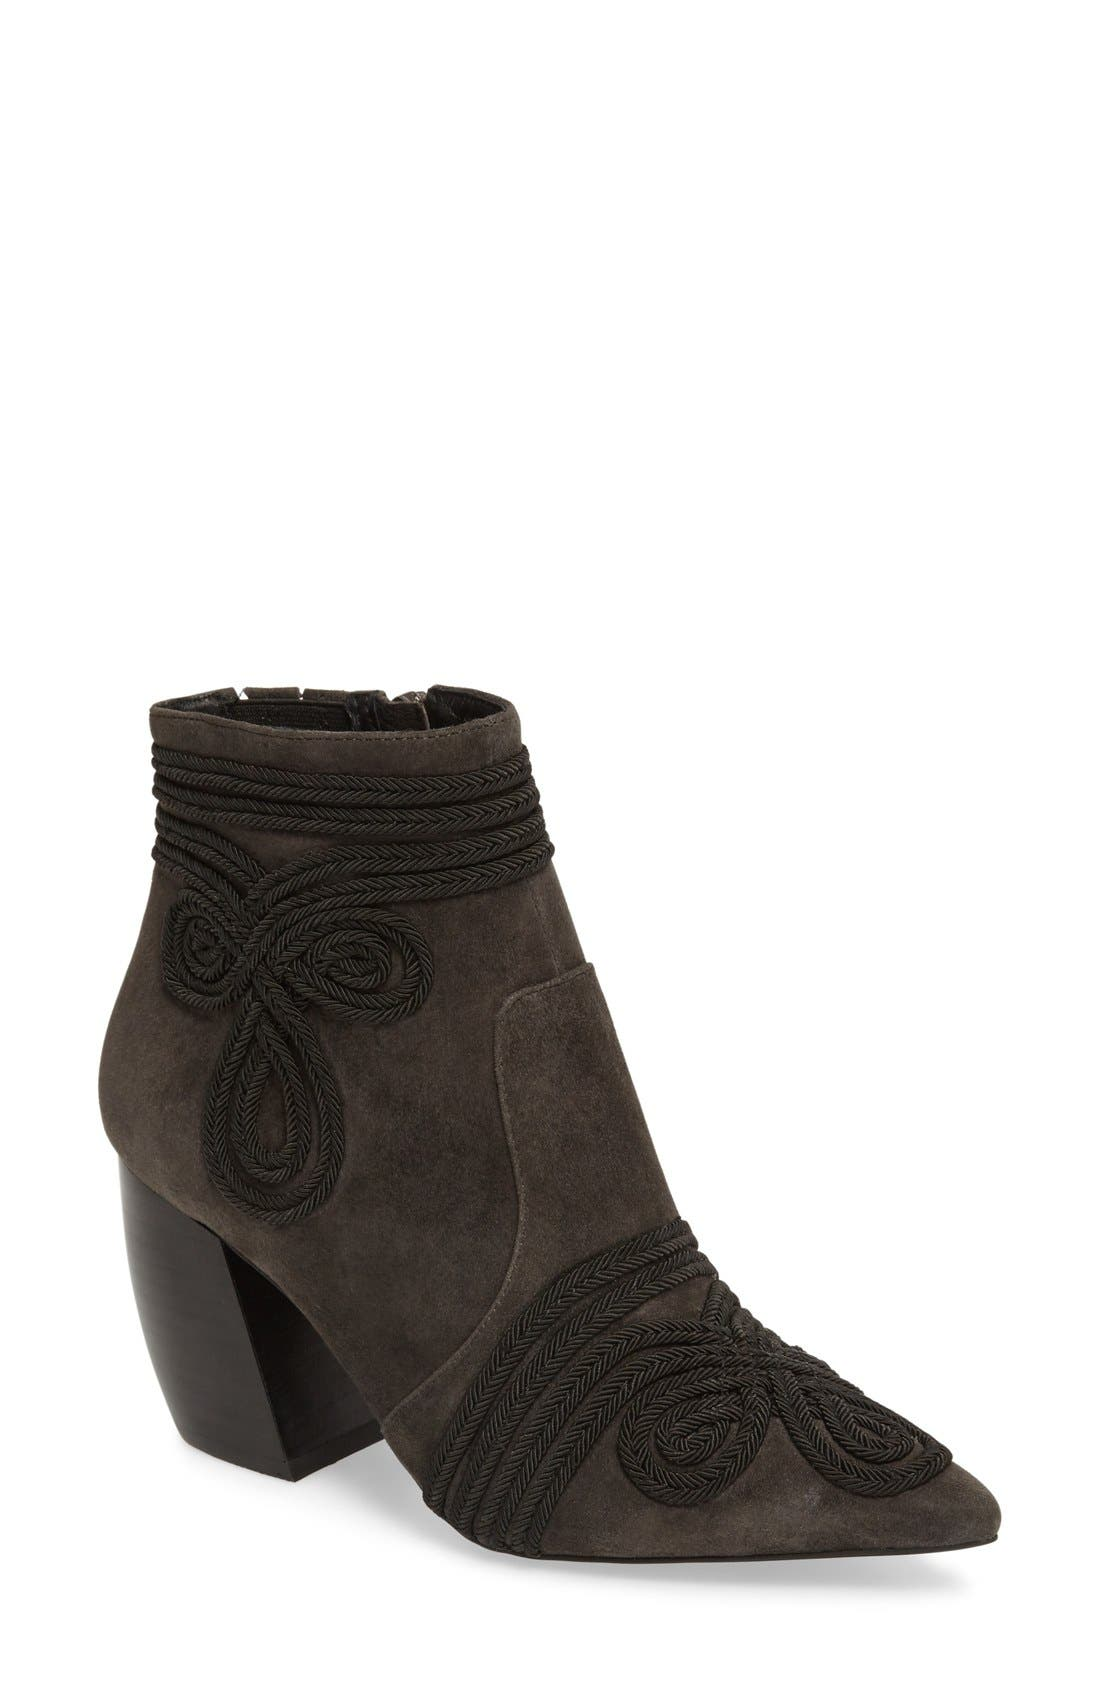 Alternate Image 1 Selected - Jeffrey Campbell Dresden Block Heel Bootie (Women)